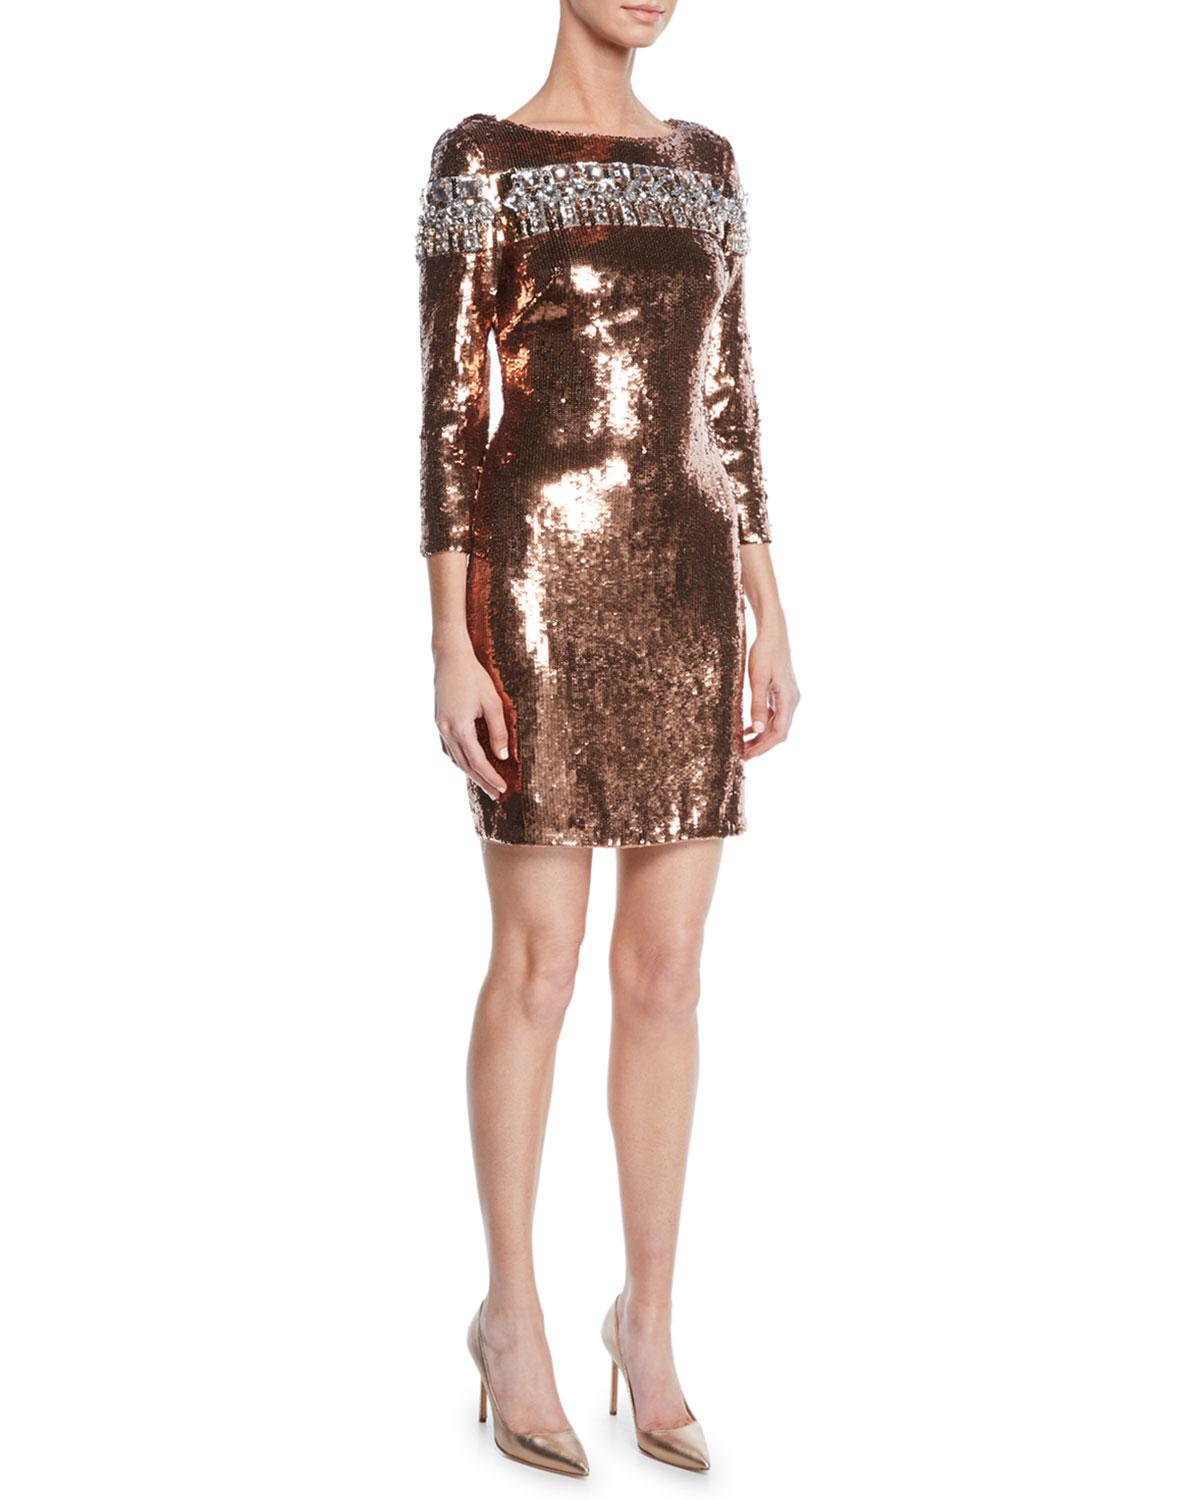 1c5a55d9953 Lyst - Aidan Mattox Embellished Sequin Cocktail Dress in Brown ...